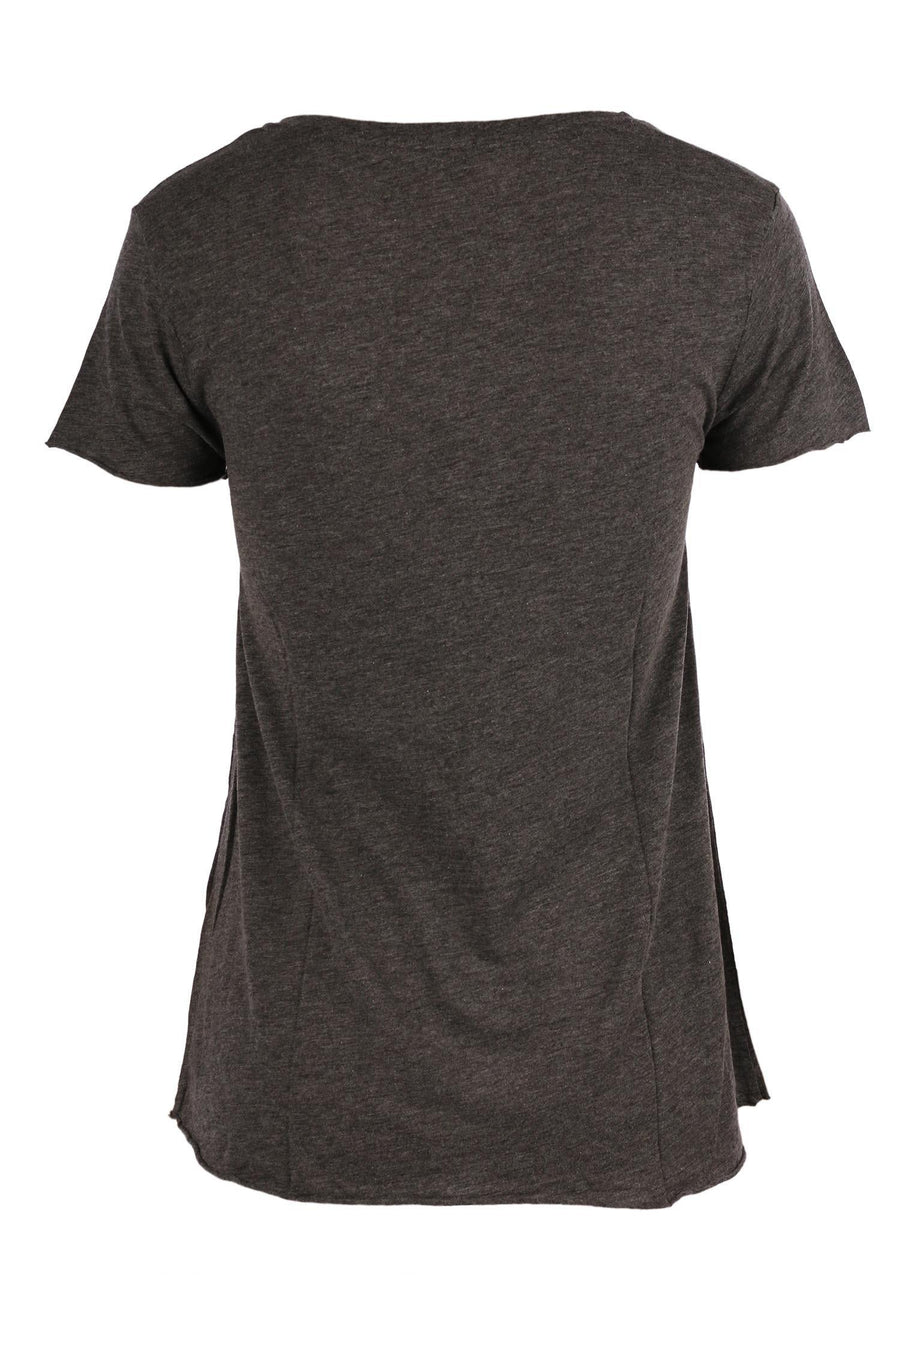 Jacksonville Short Sleeve Tee in Charcoal